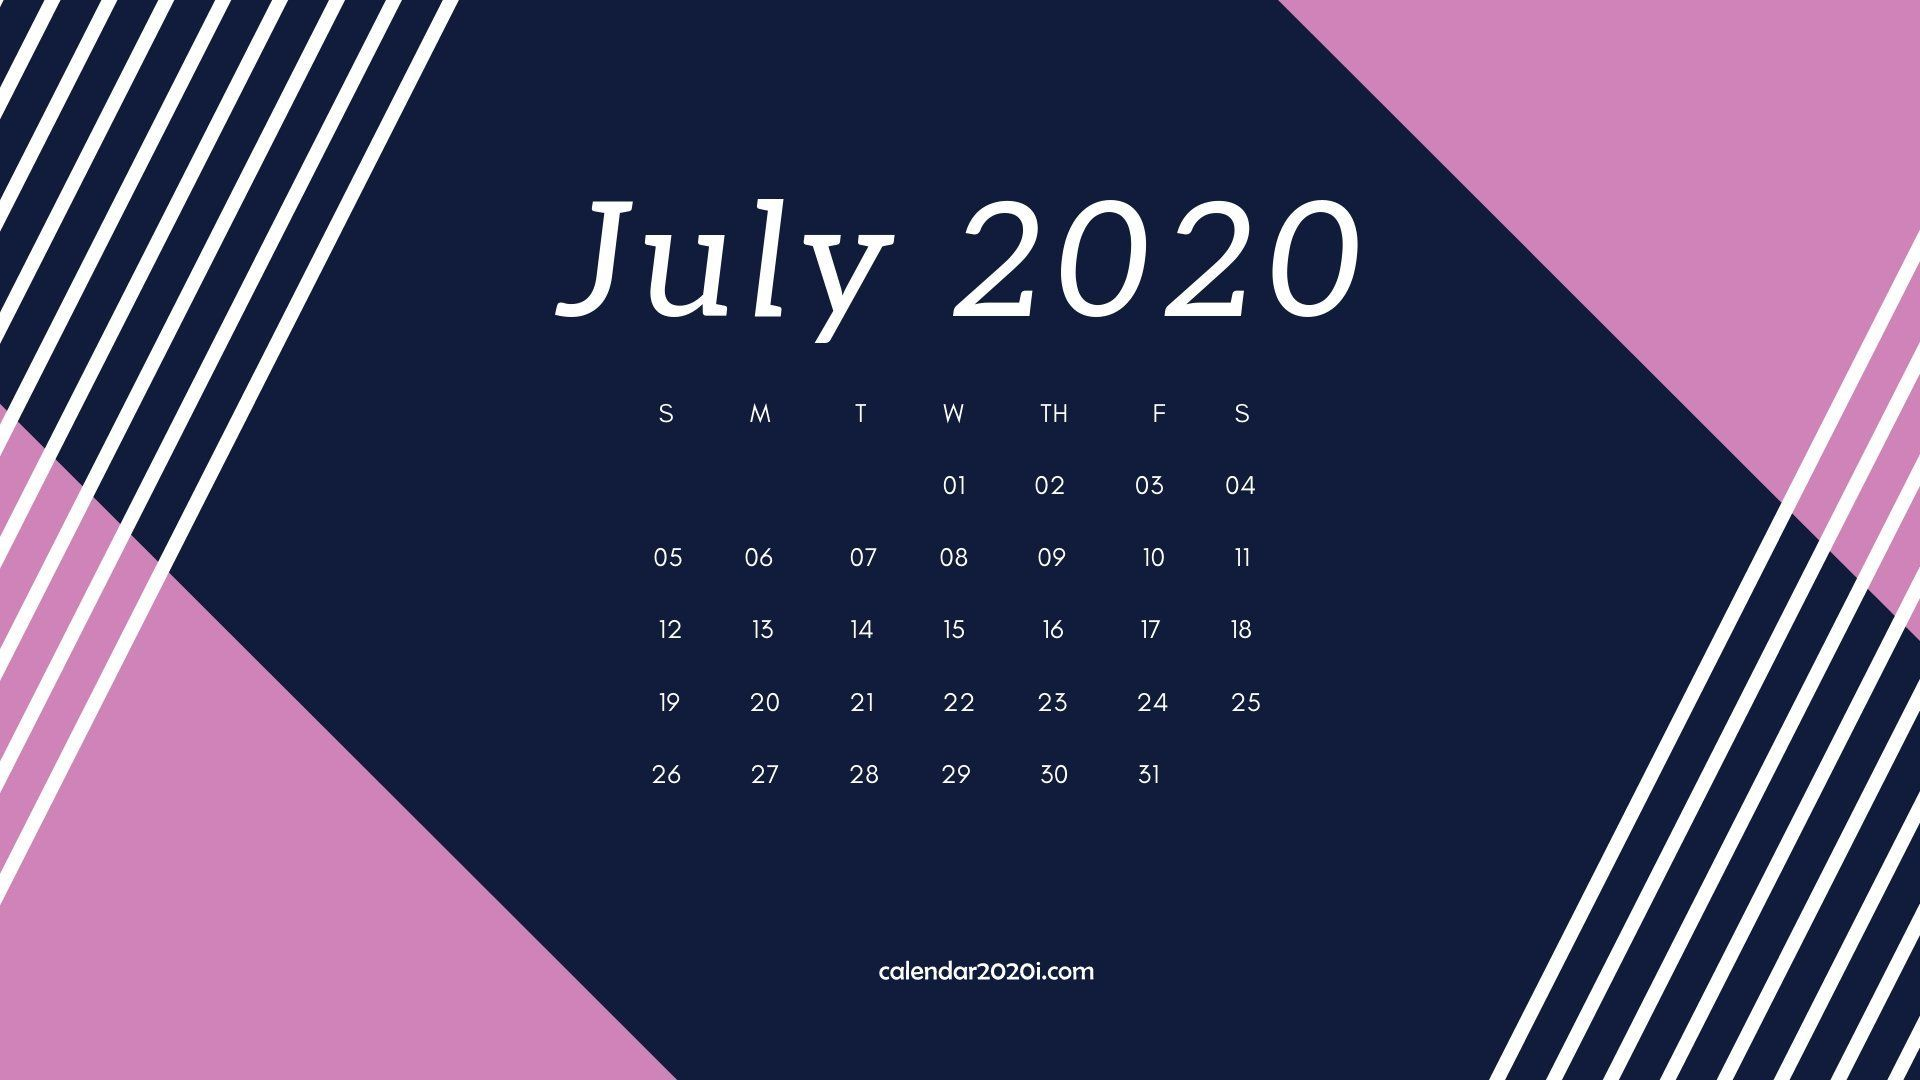 50 July 2020 Calendar Wallpapers On Wallpapersafari